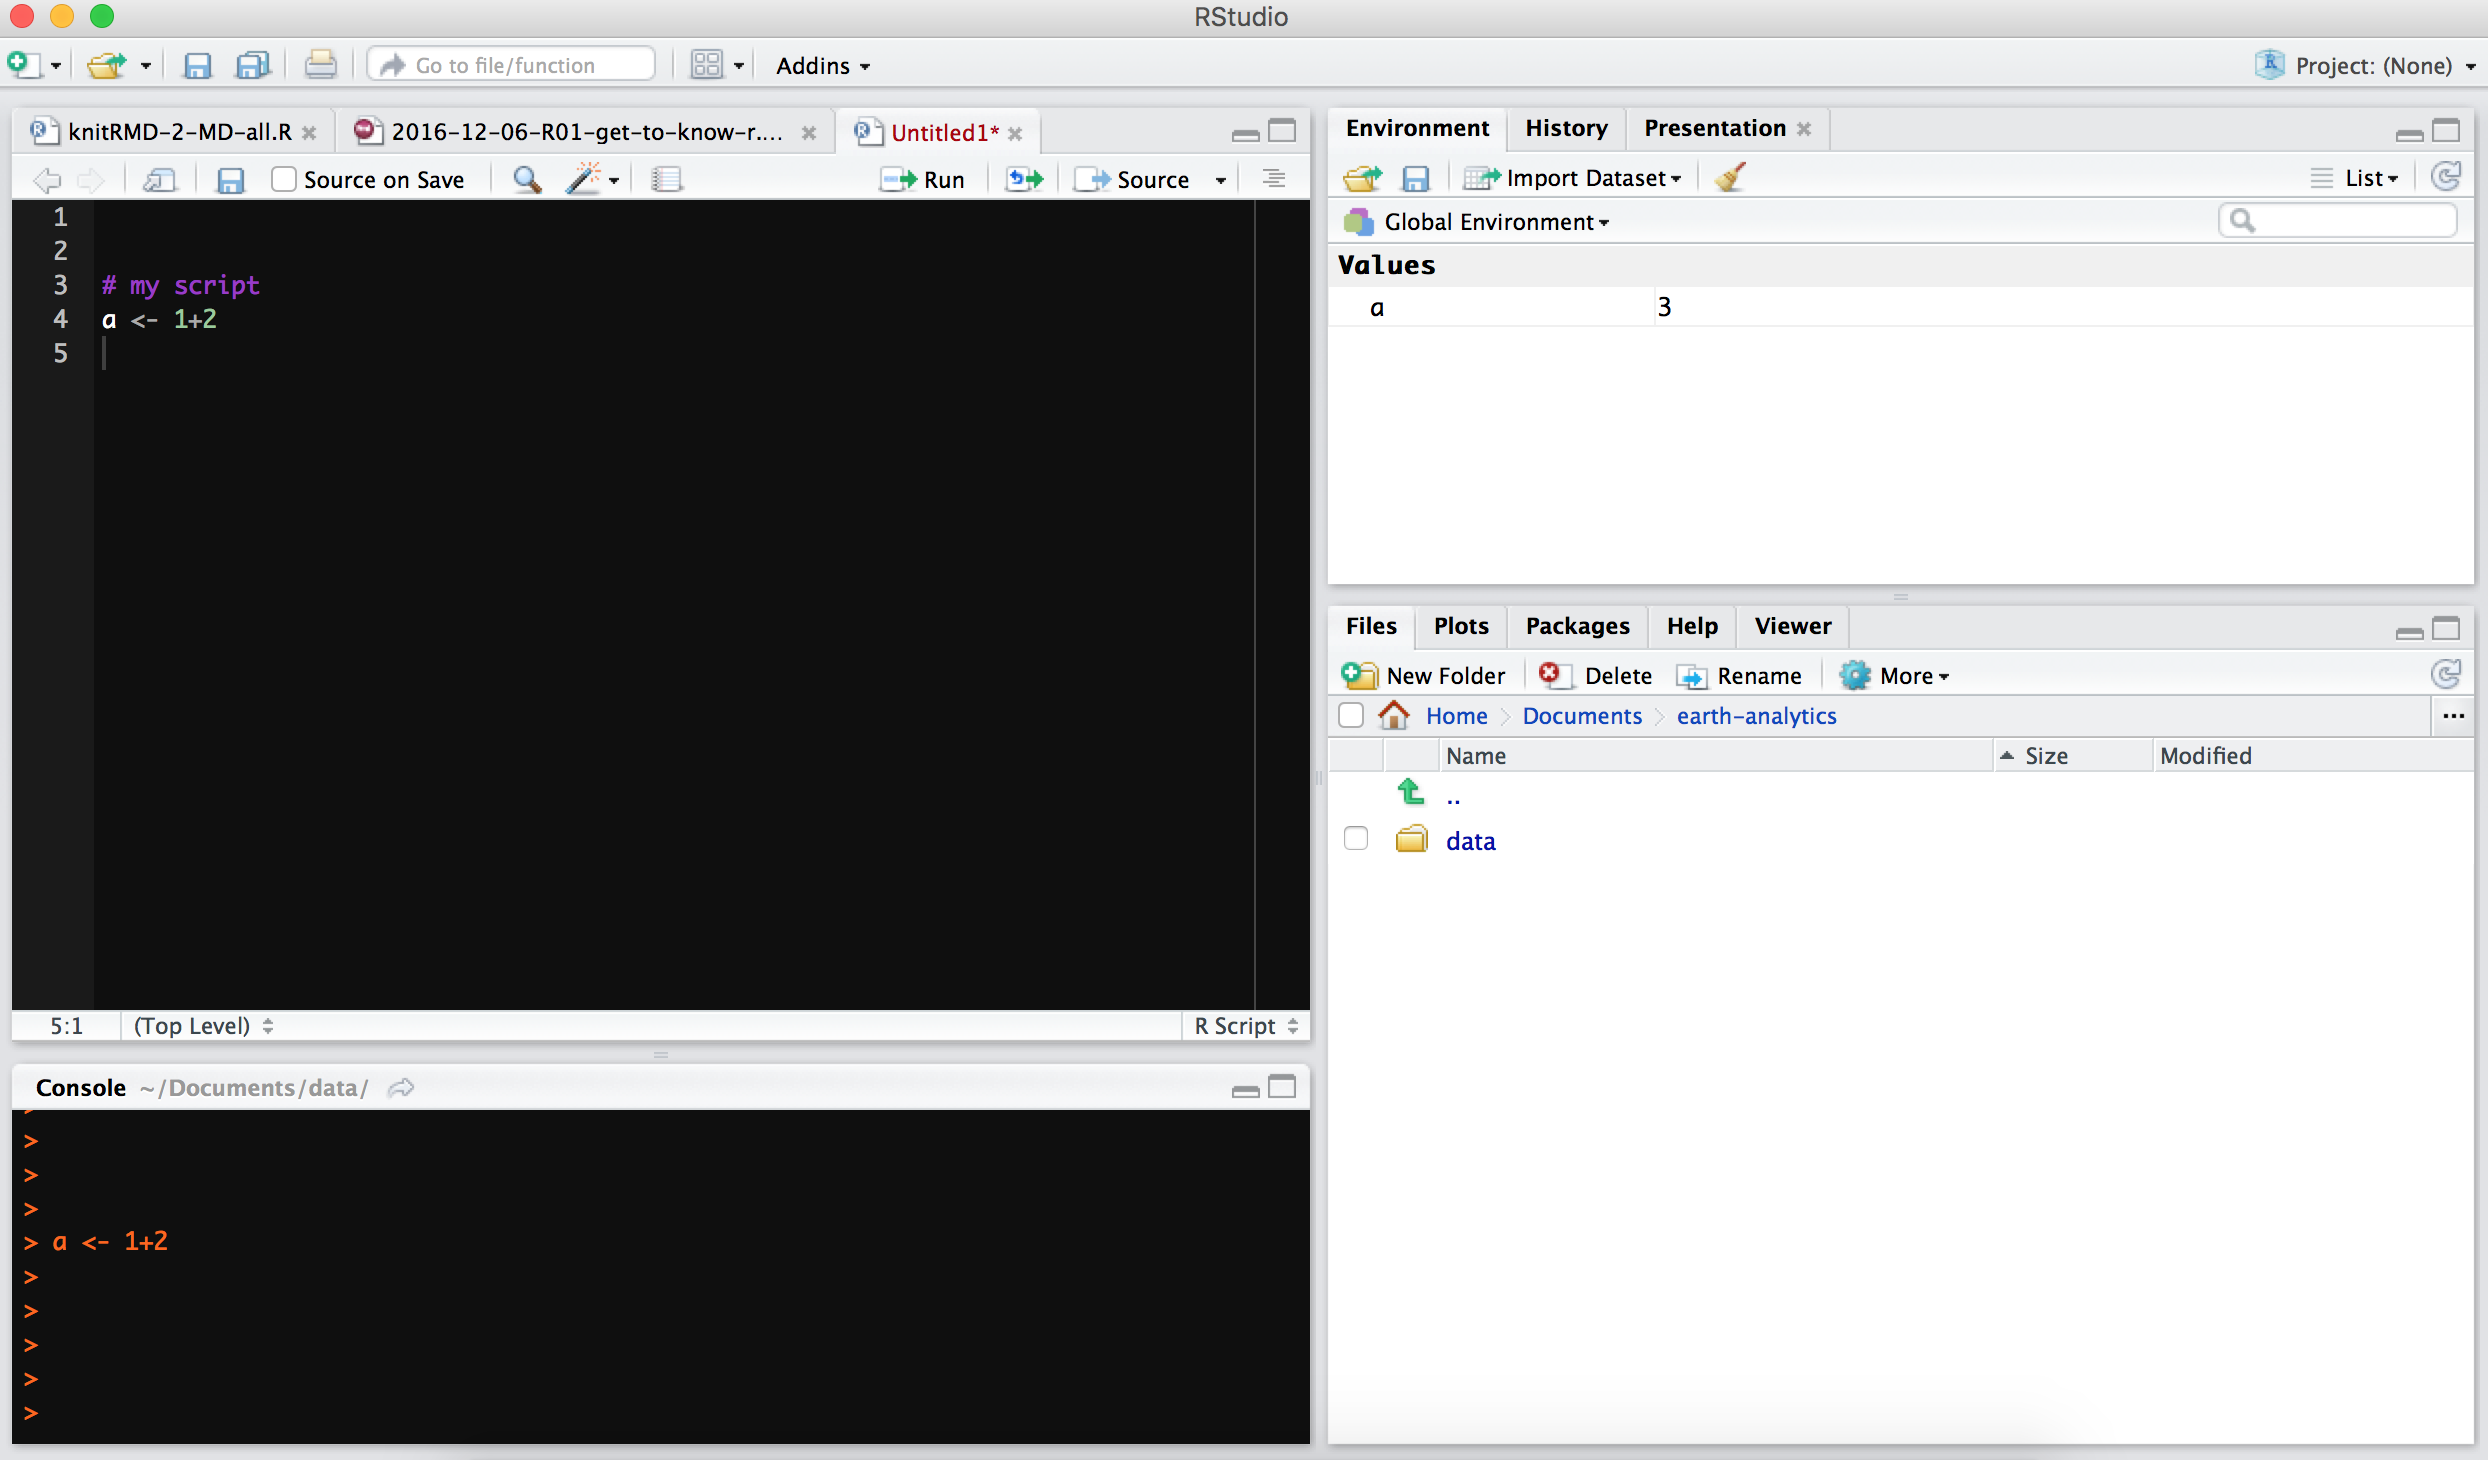 rstudio interface